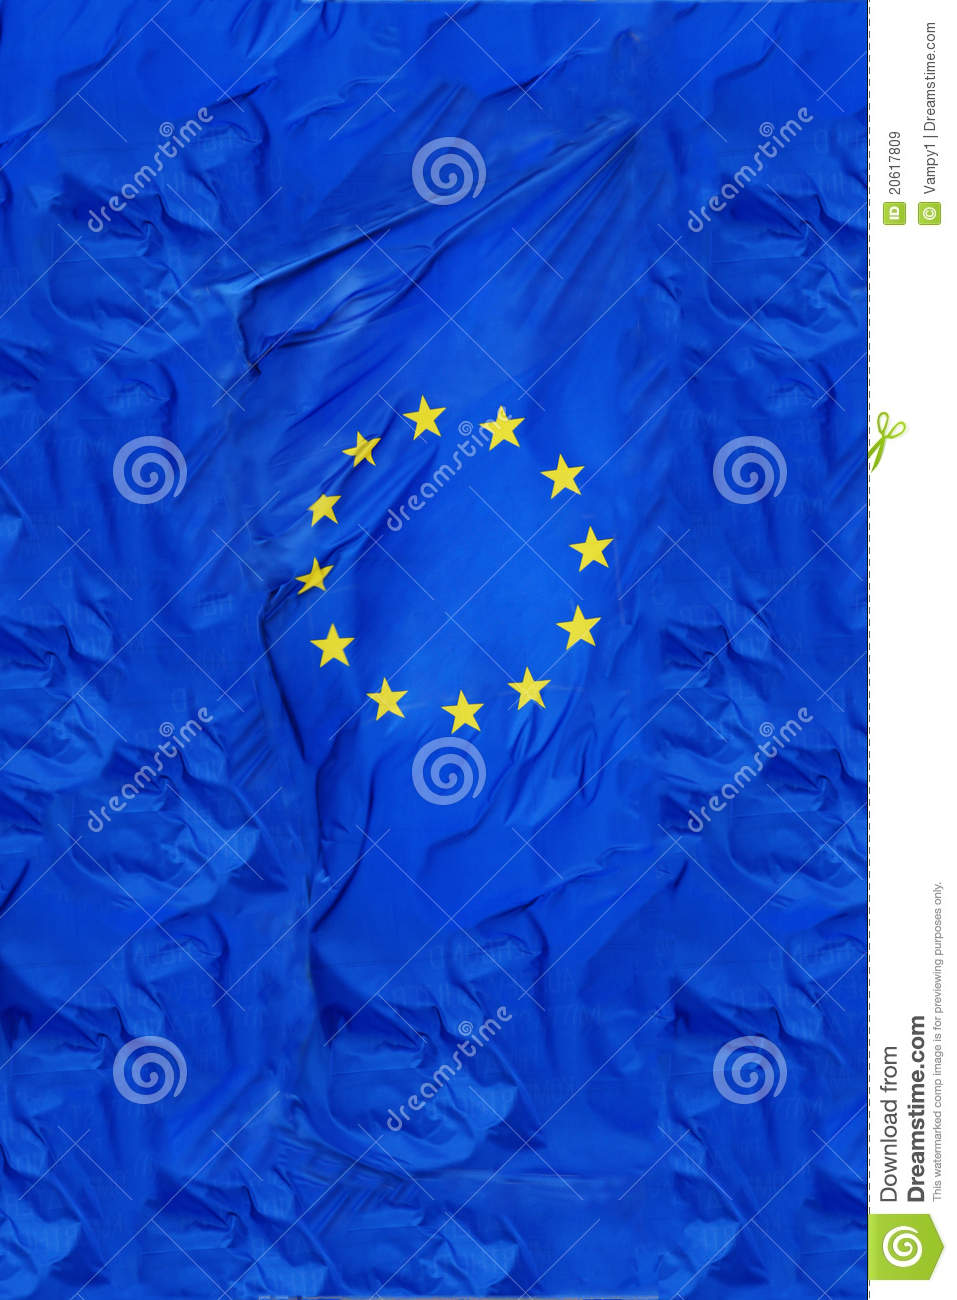 Europeisk flagga